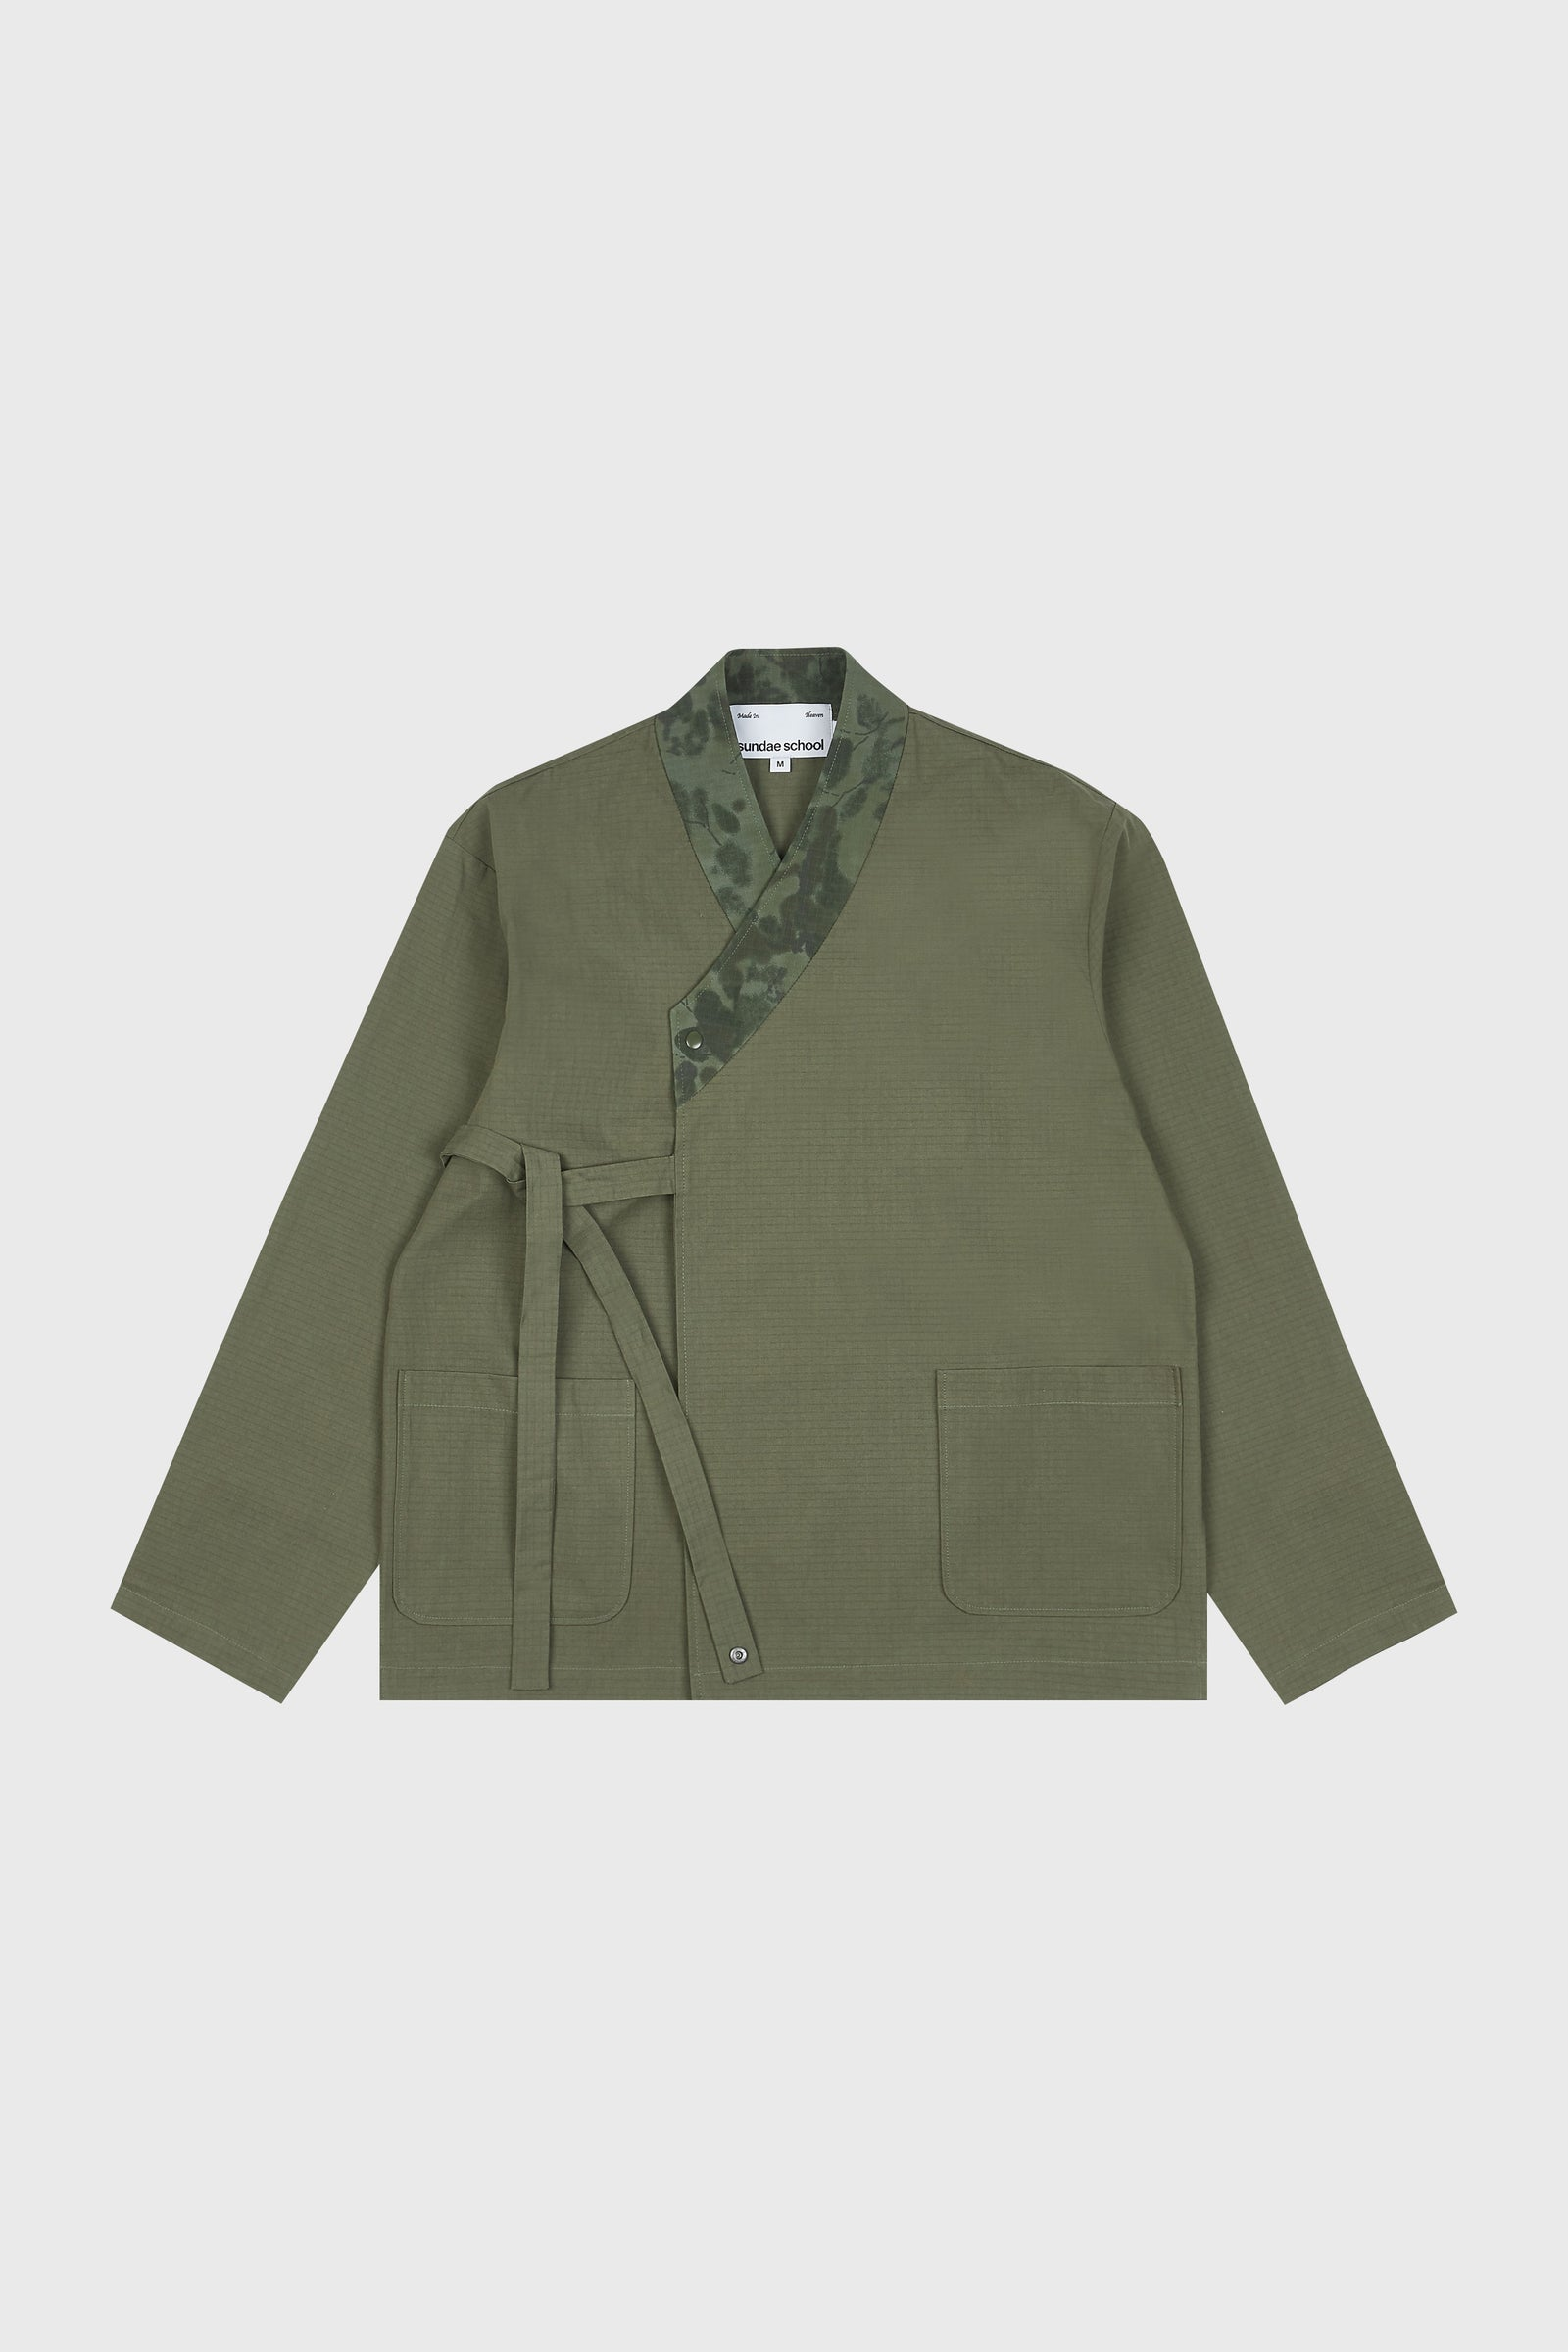 Photo of Army Green Double Layered Jeogori Bomber Jacket, number 3